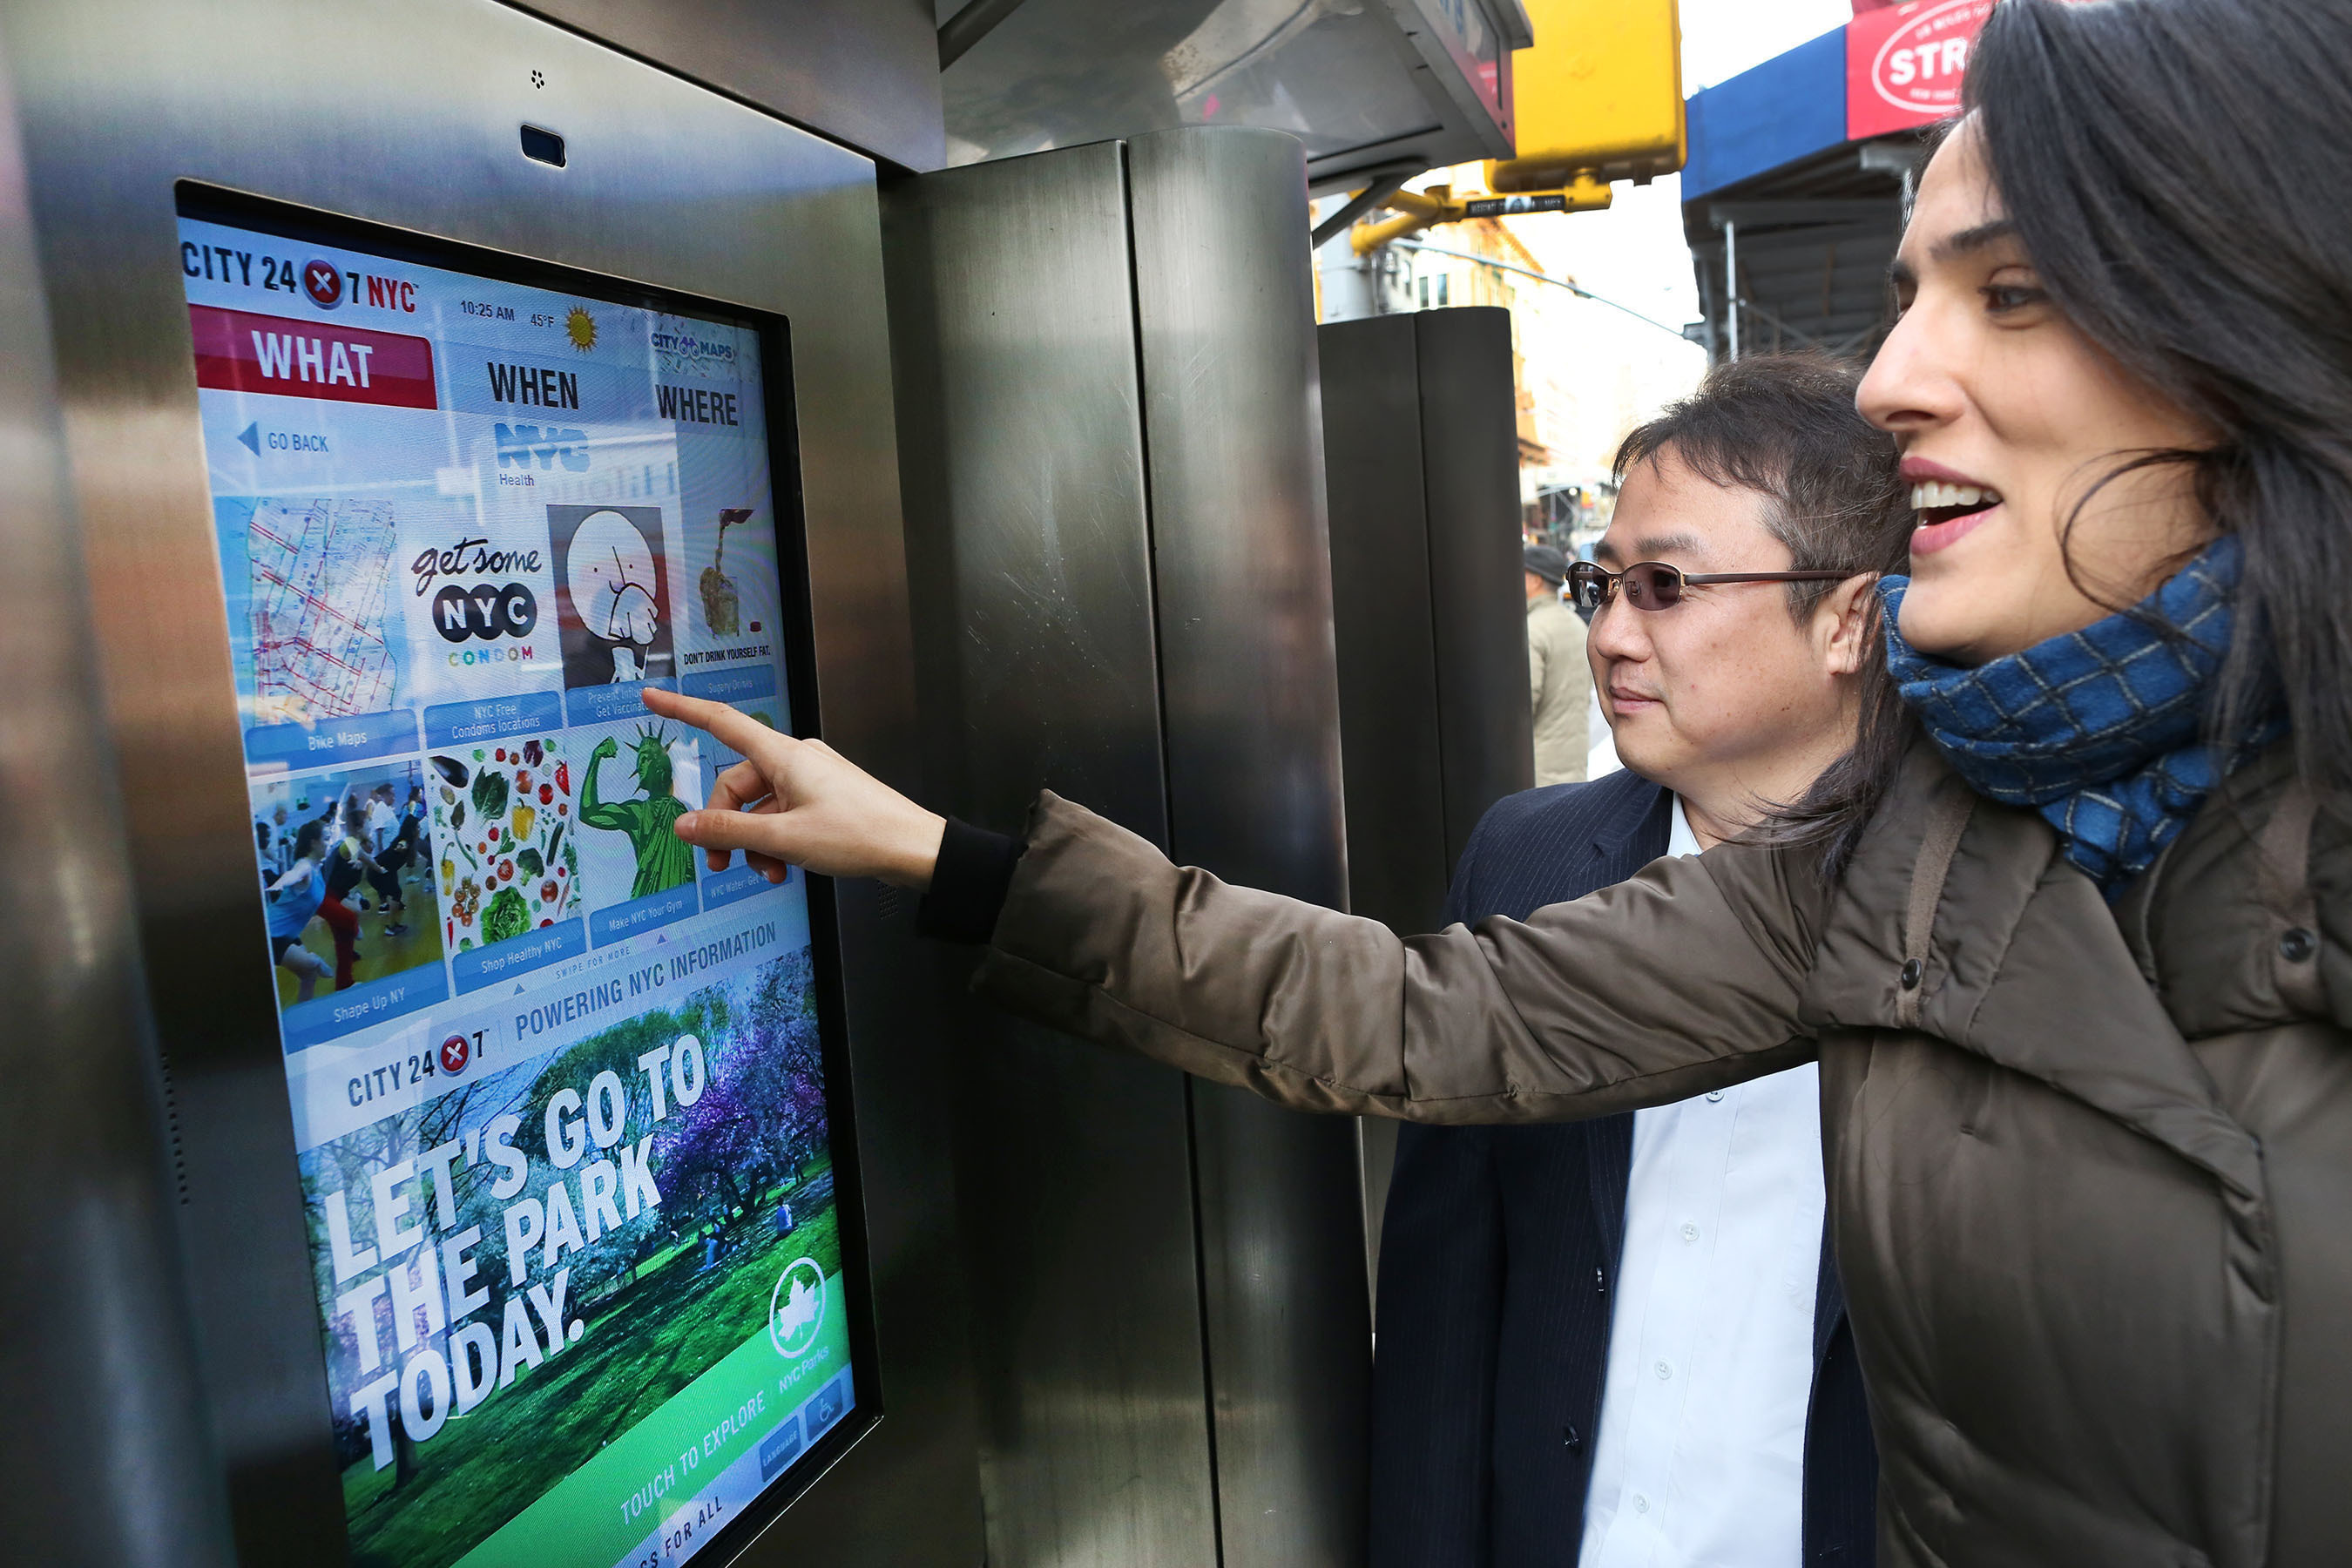 Jennifer Falk, Executive Director for The Union Square Partnership, and Jay Kang, Marketing Manager for LG Electronics USA Home Electronics B2B Division, interacting with an interactive touch-screen display unveiled today in the Union Square area of Manhattan. City24/7, the New York-based start-up that developed the pilot program with the City Department of Information Technology and Telecommunications, chose the 32-inch class LG Touch-Screen Monitor for its ruggedized outdoor design and high-definition touch capabilities.  (PRNewsFoto/LG Electronics USA)